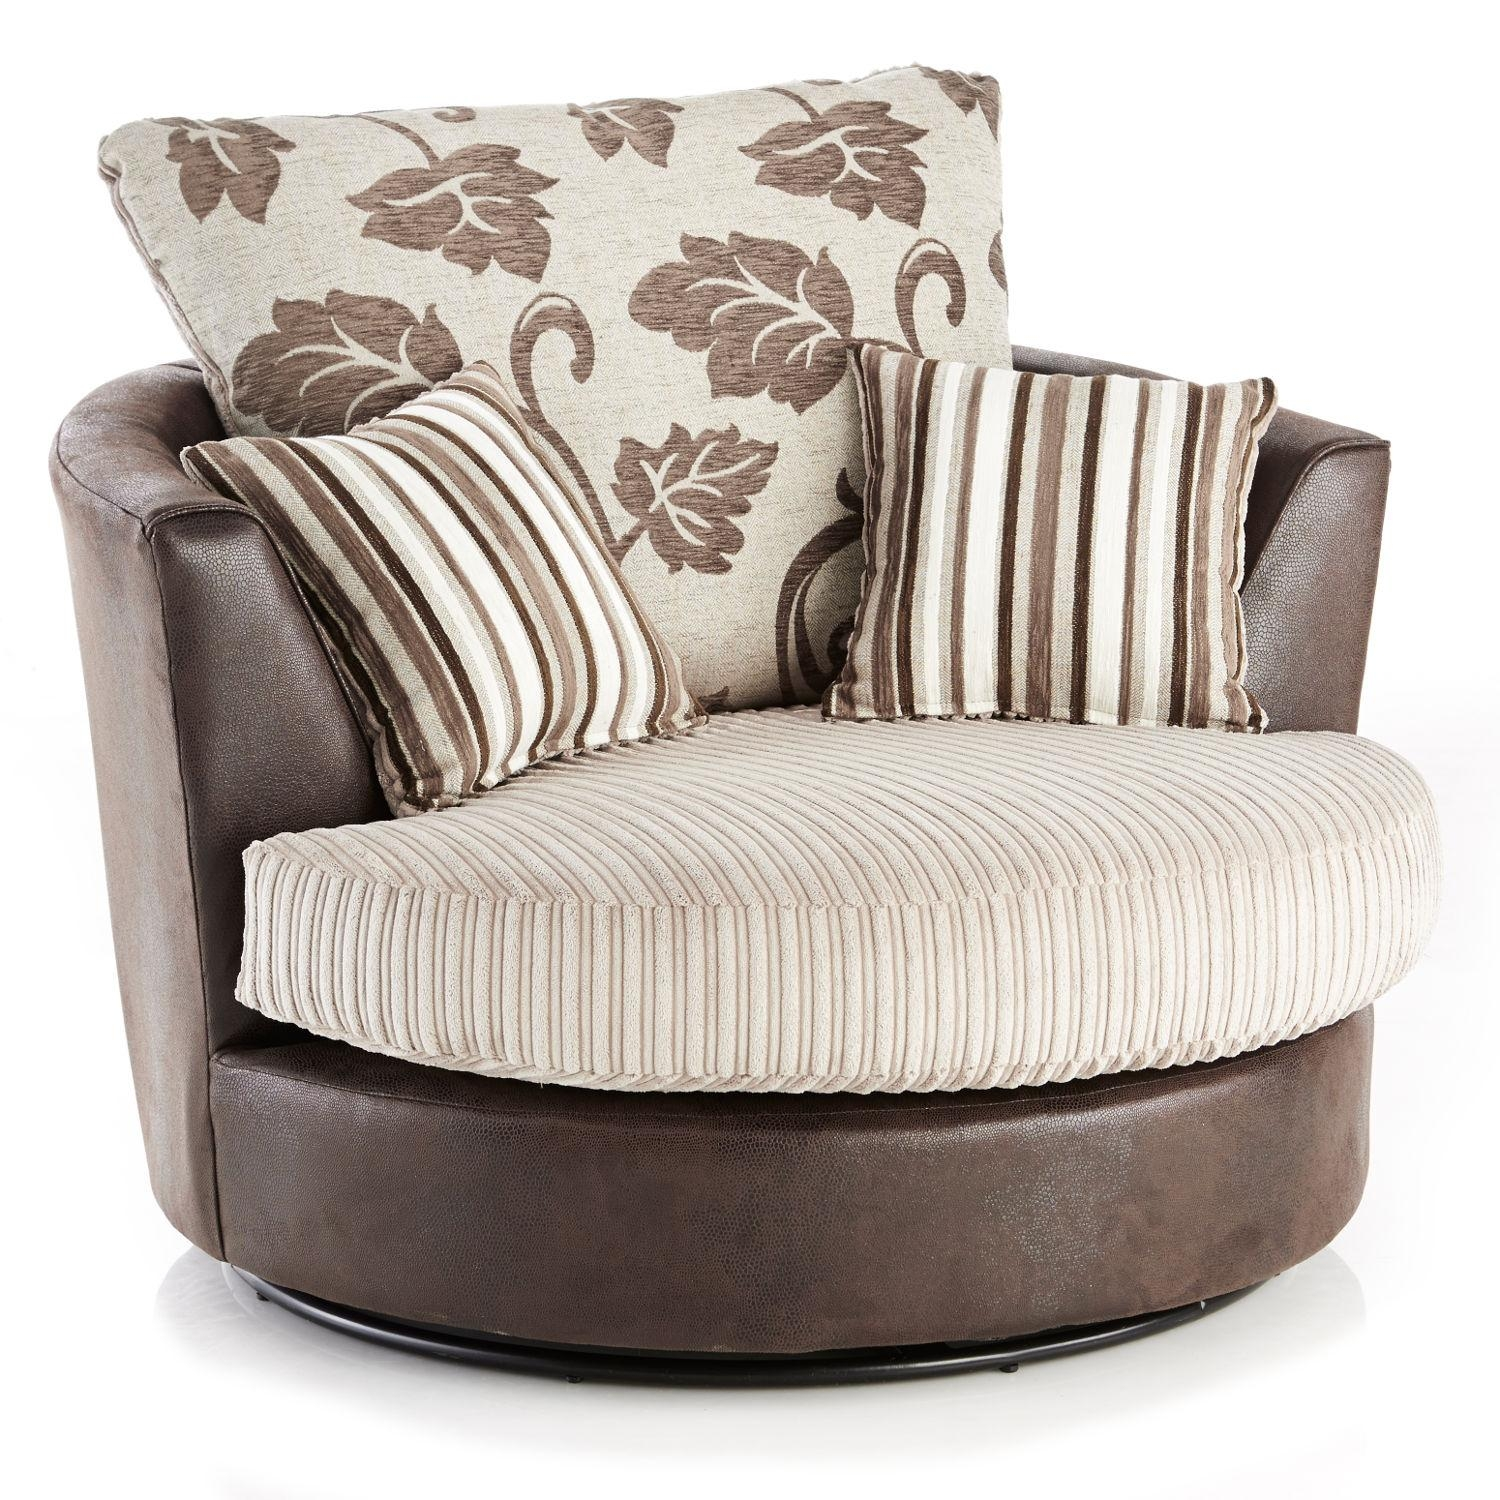 2 Seater Sofa And Swivel Chair - Webforfreaks within Cuddler Swivel Sofa Chairs